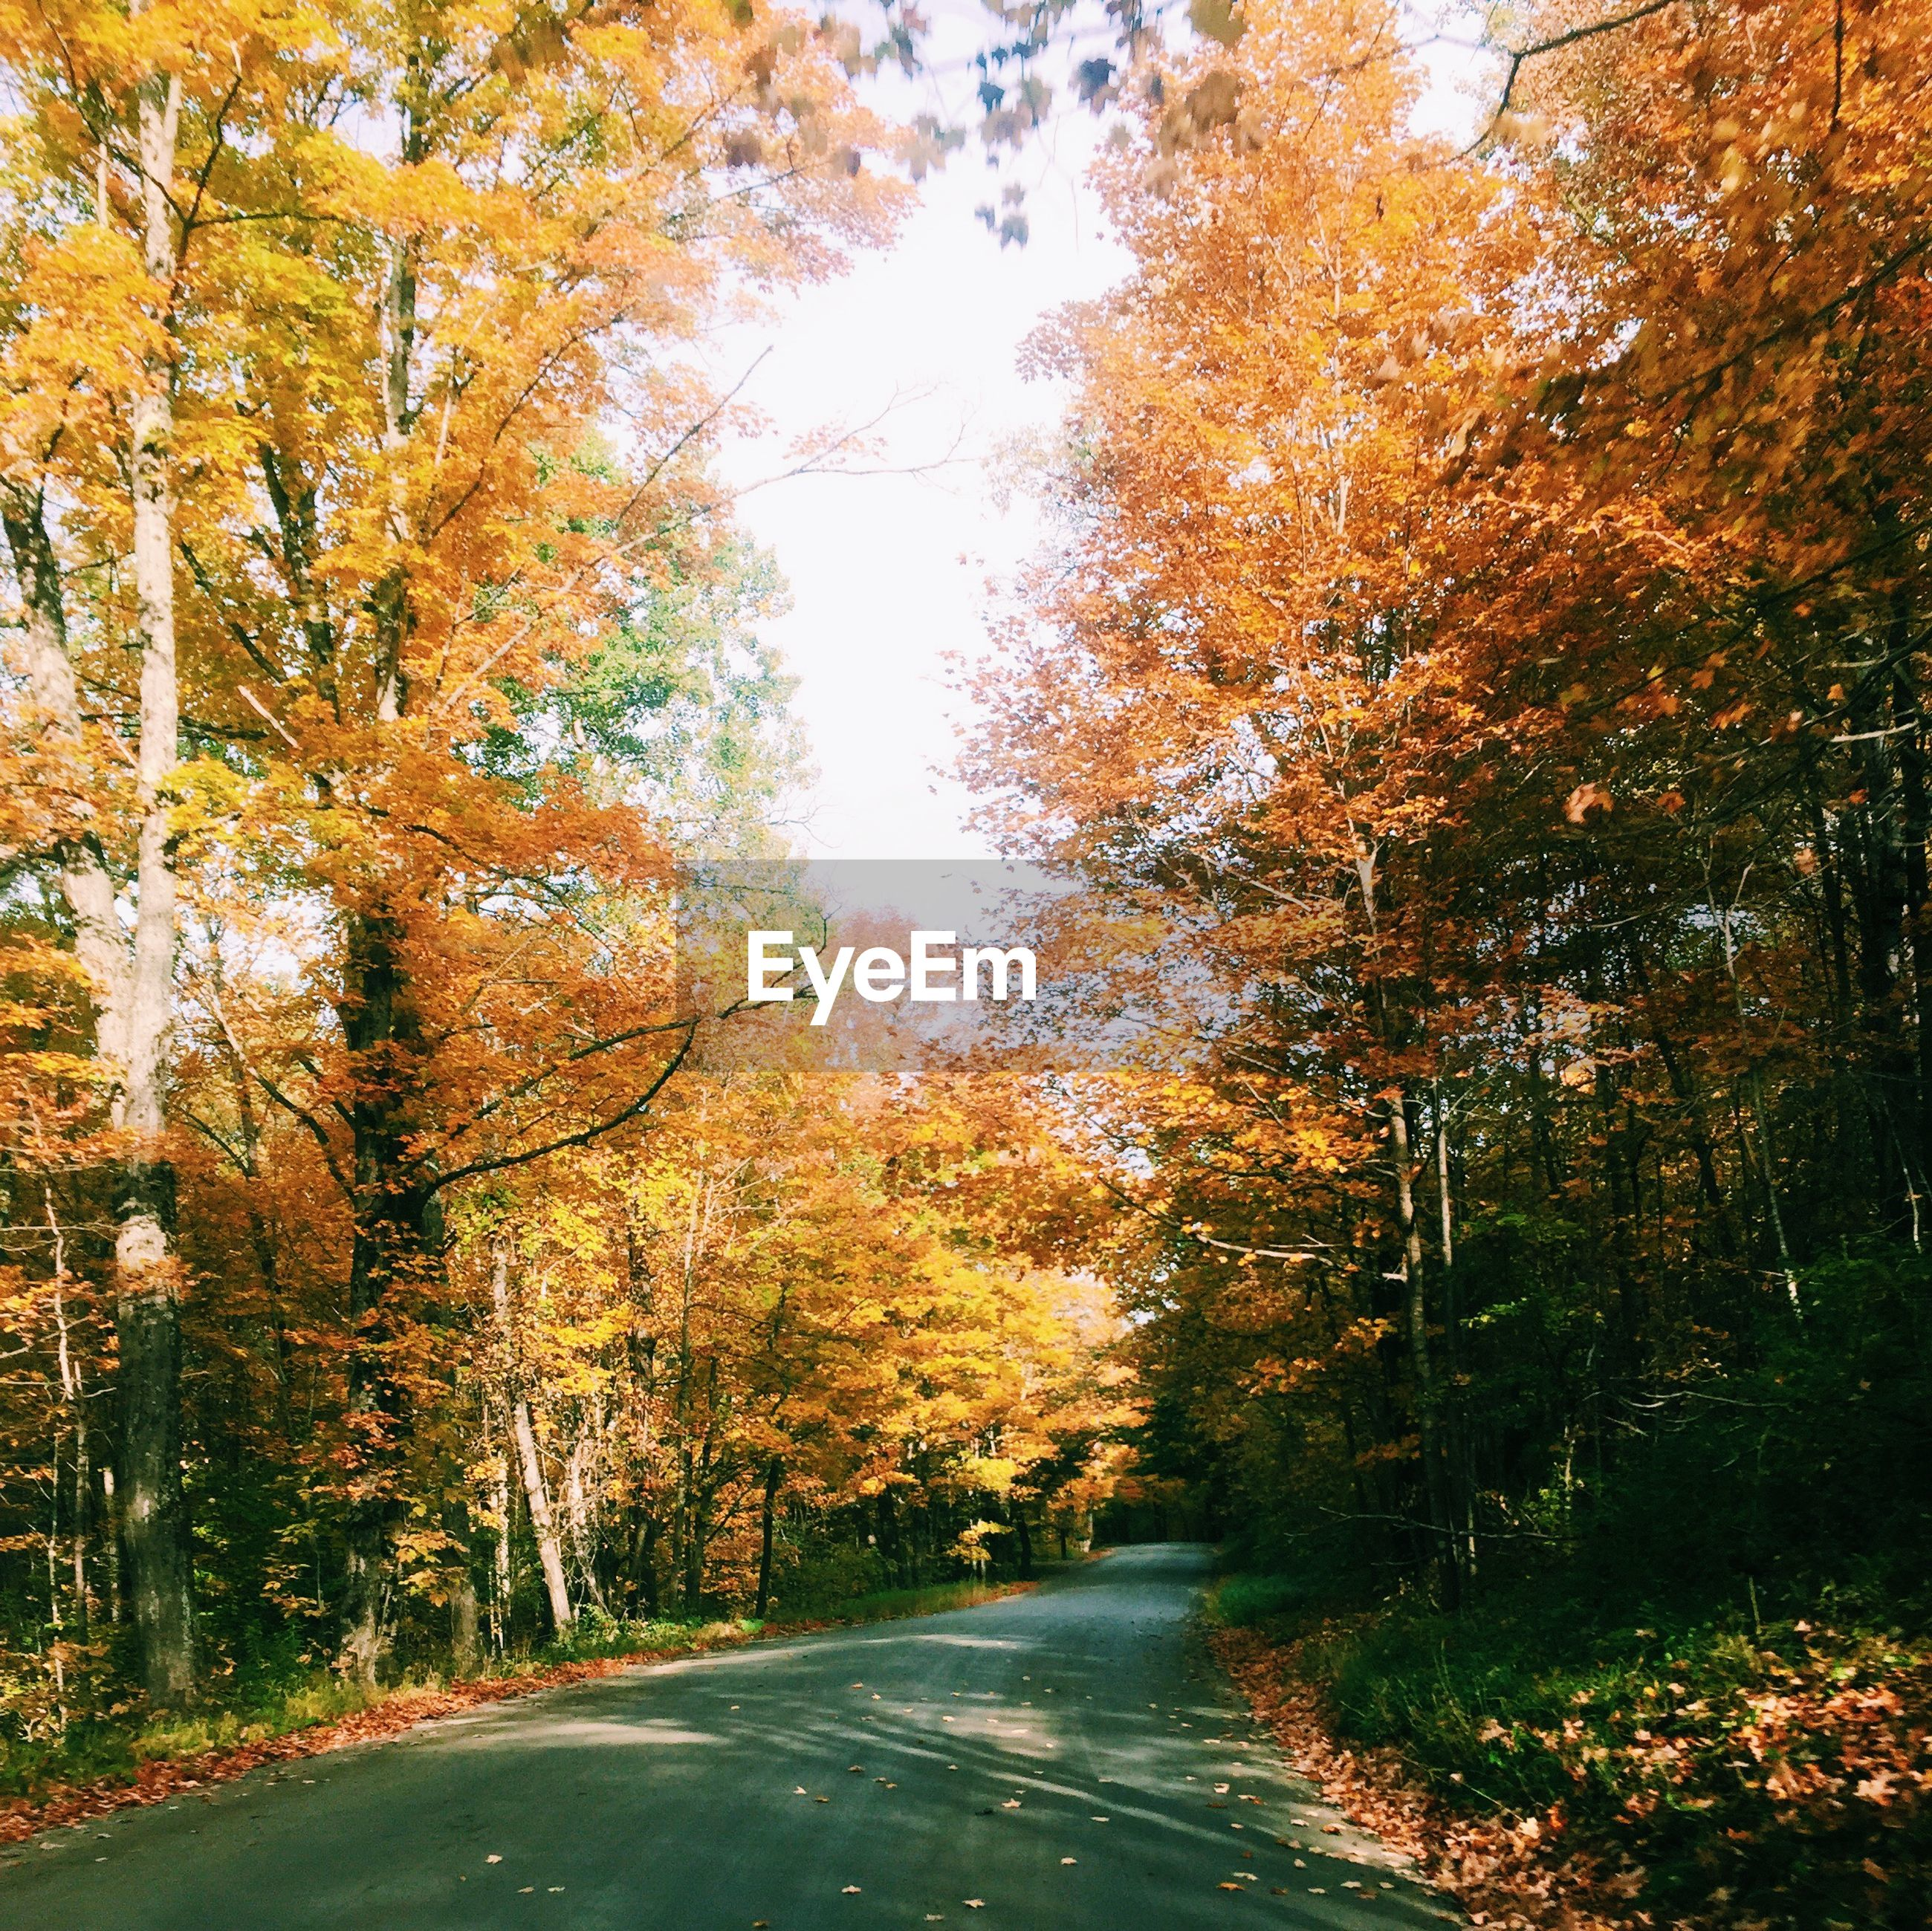 ROAD AMIDST AUTUMN TREES IN FOREST